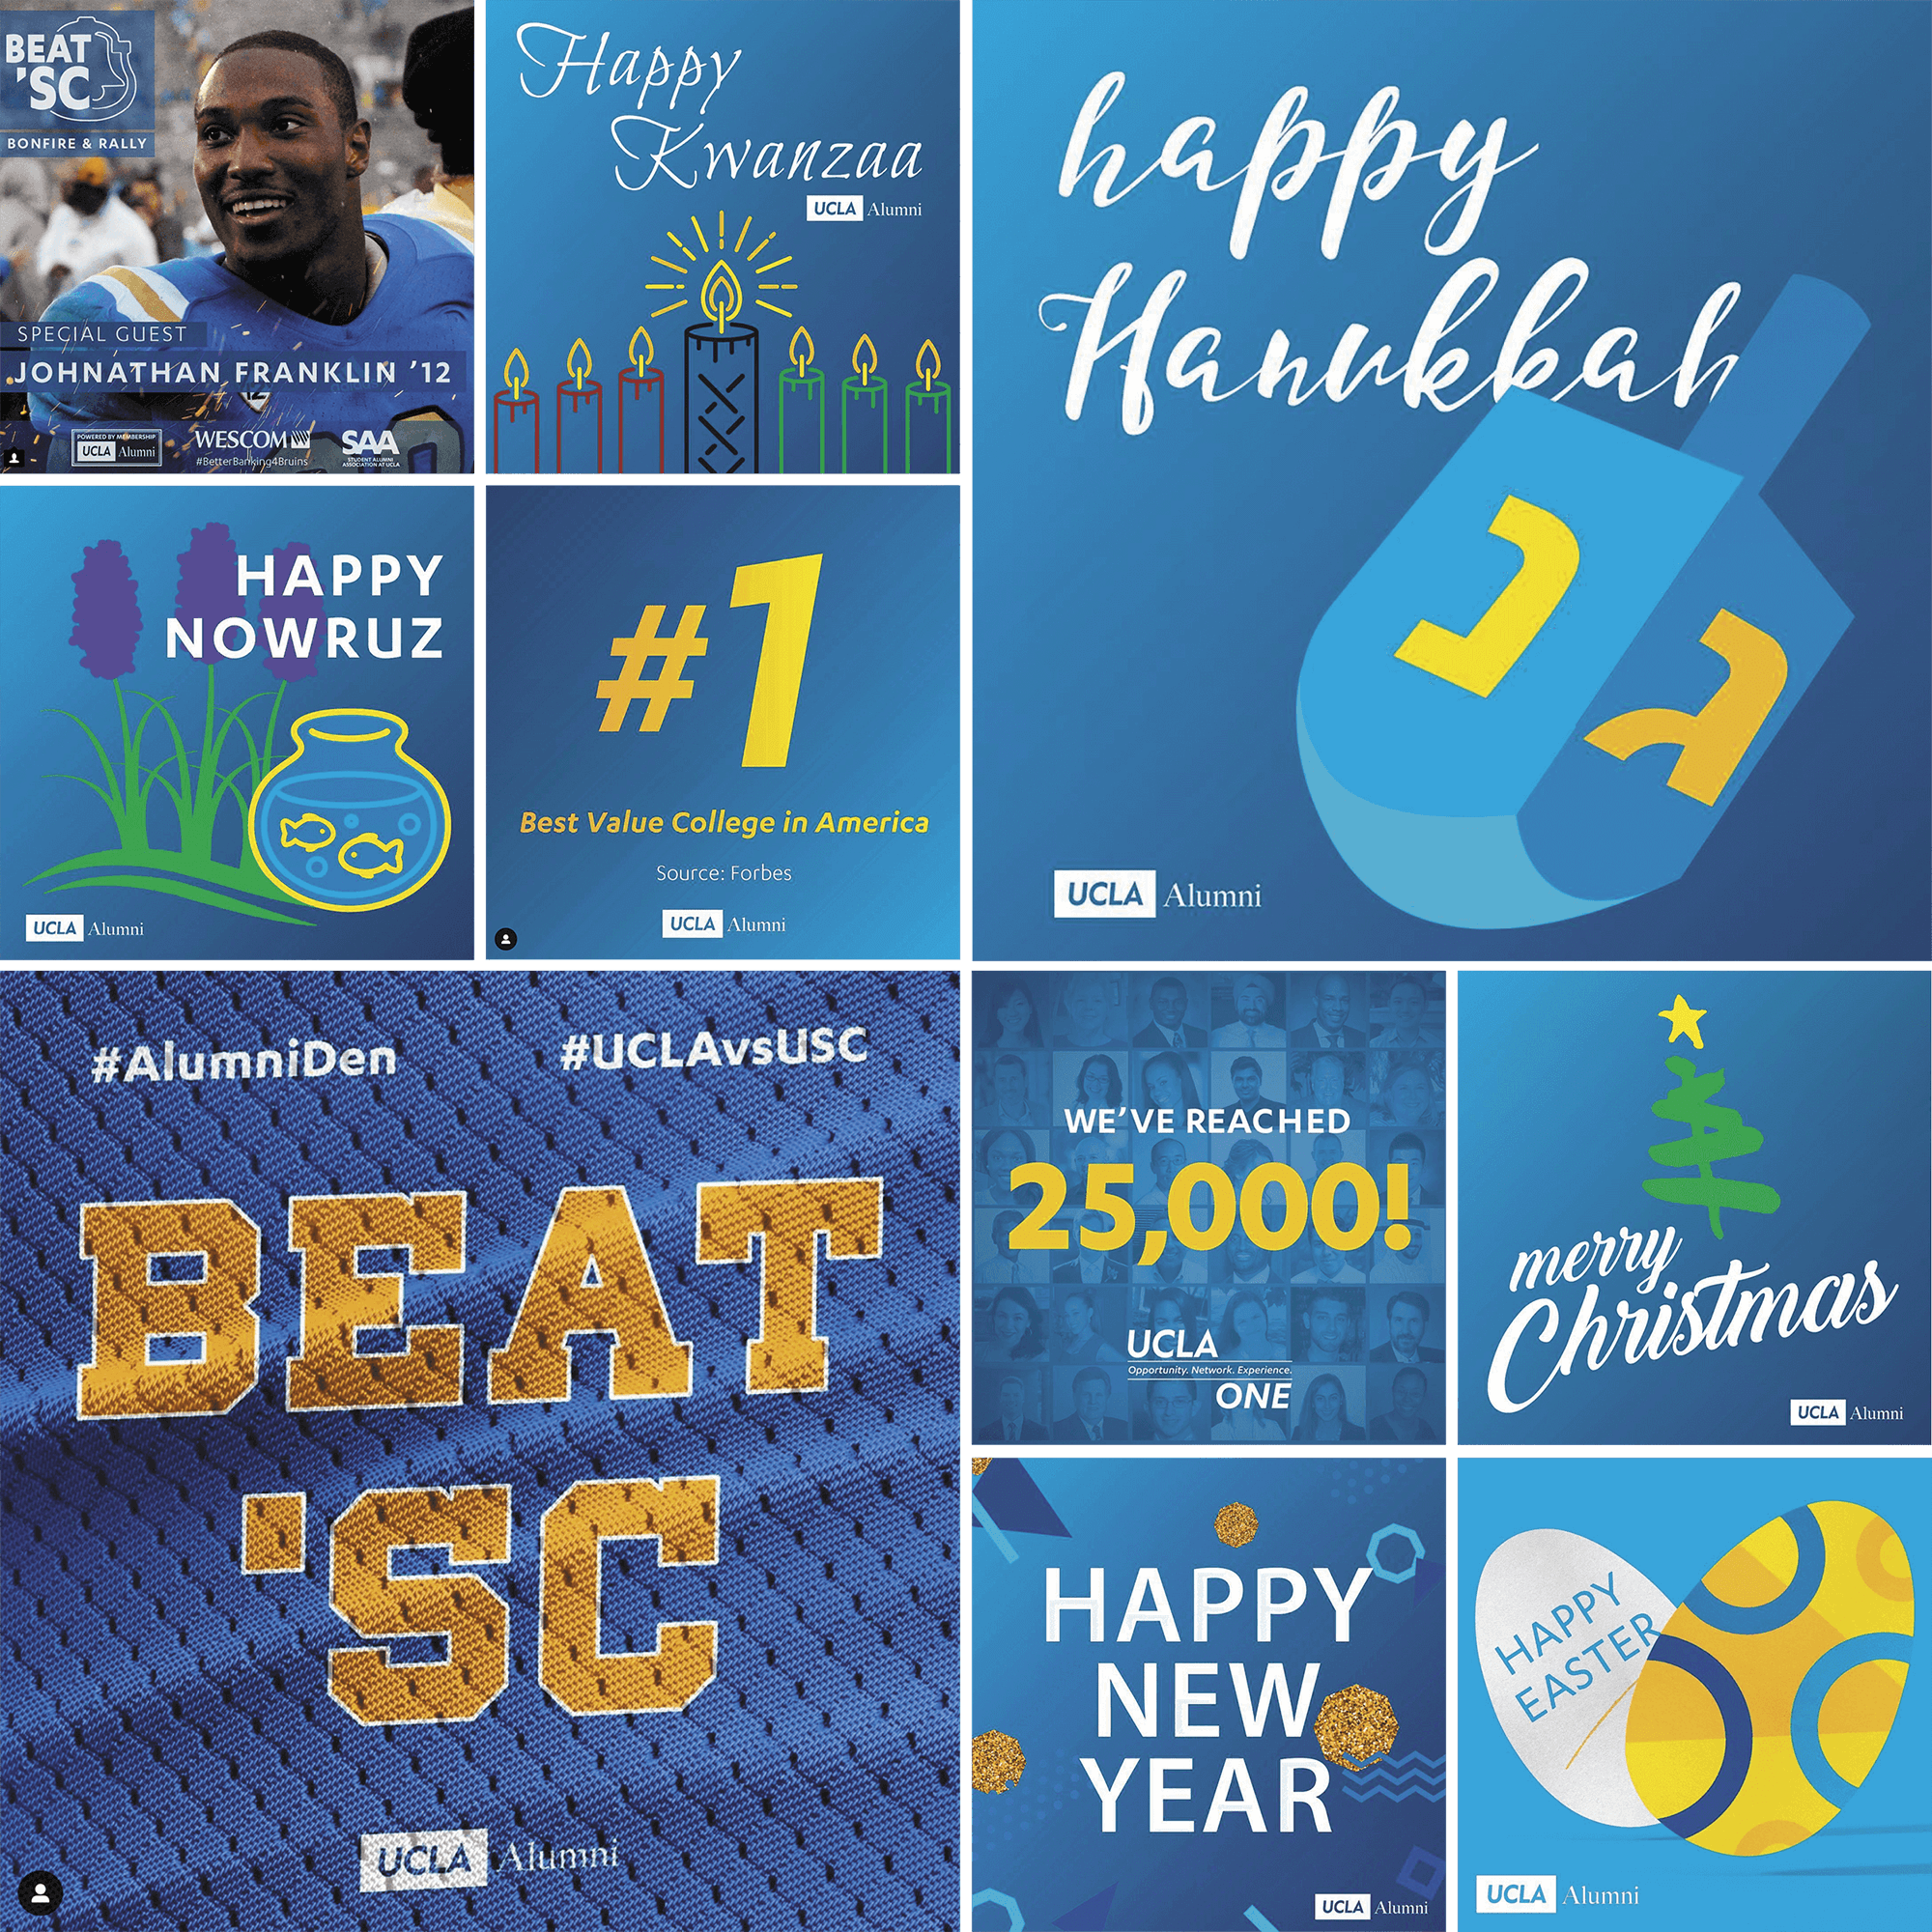 UCLA Alumni celebrates international holidays, announces major events, and brags about the university's achievements on social media. These are just a few of the graphics I've created for their team.